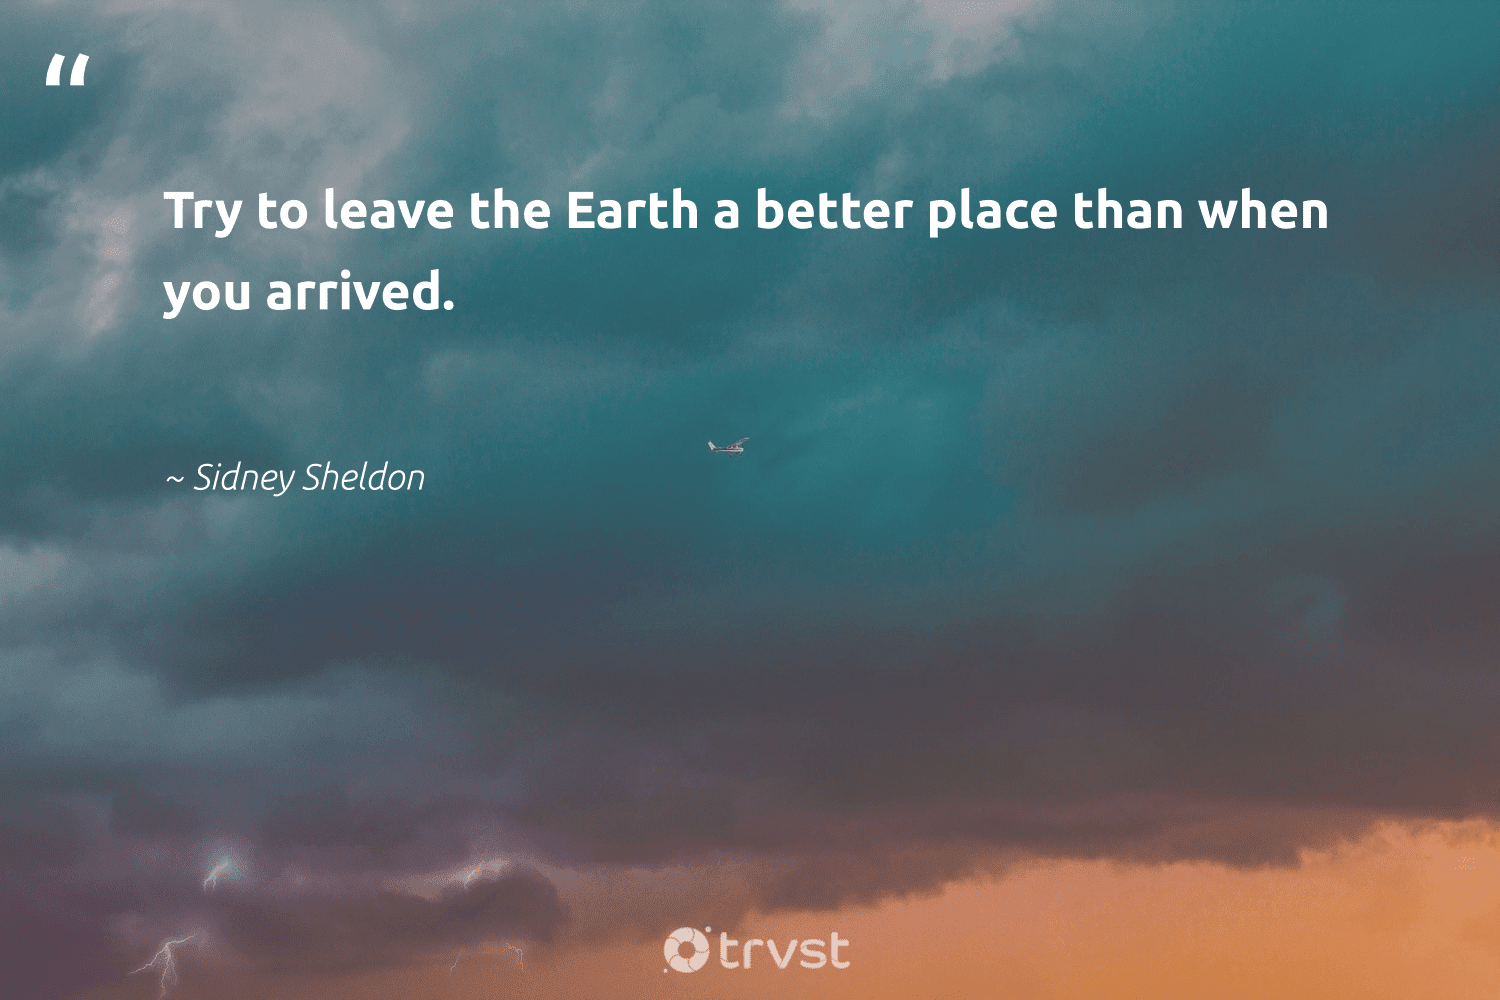 """""""Try to leave the Earth a better place than when you arrived.""""  - Sidney Sheldon #trvst #quotes #environment #earth #conservation #giveback #natureseekers #bethechange #getoutside #sustainableliving #ecoconscious #nature"""